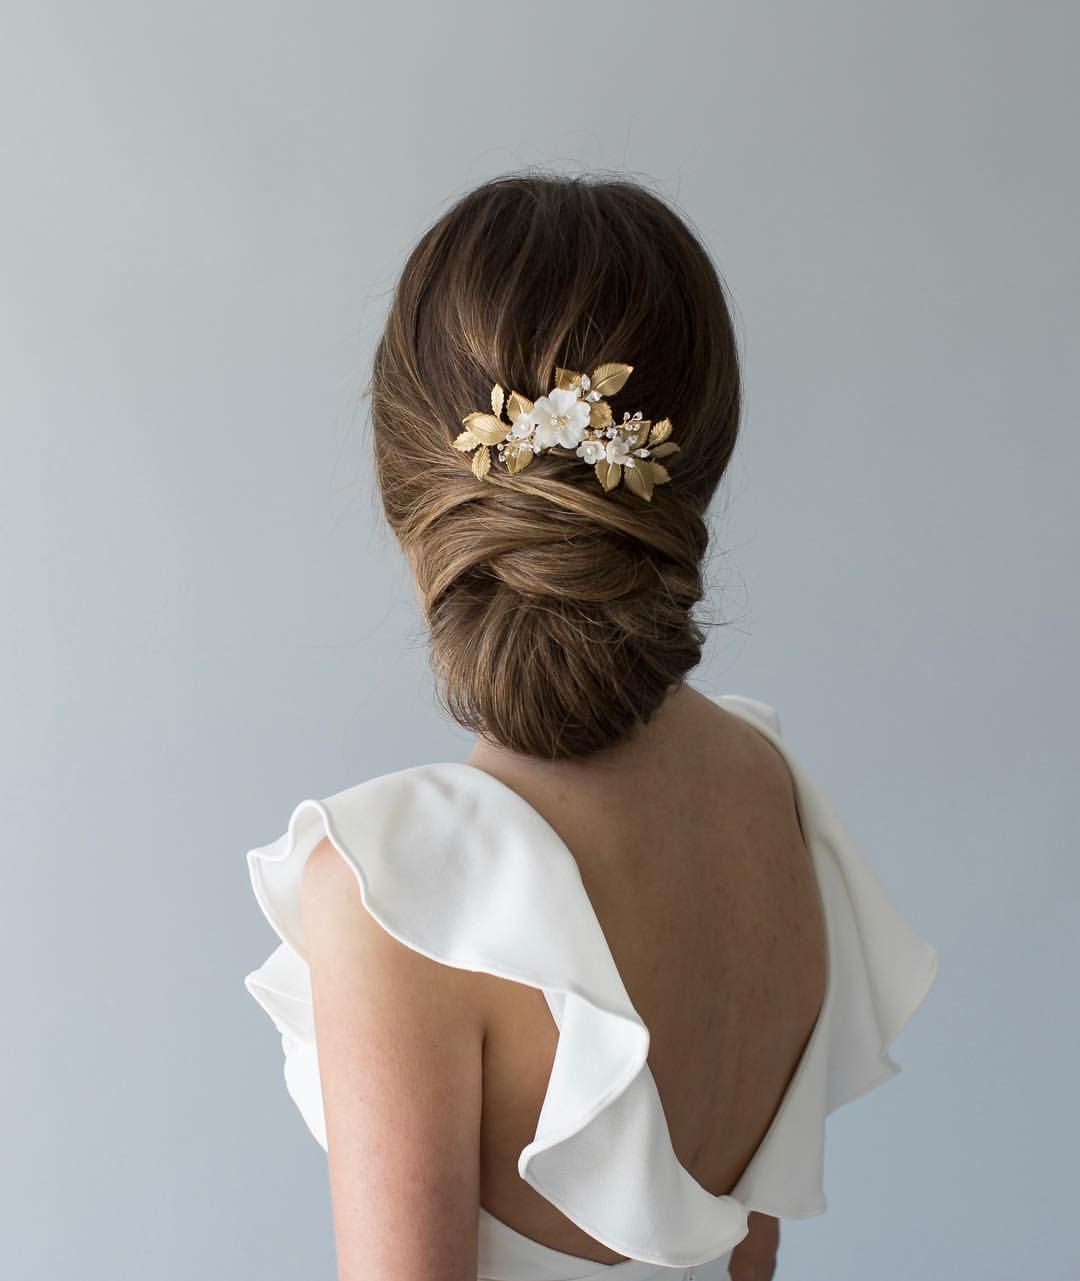 ithaca, ny salon karma salon up do wedding hair bridal hair